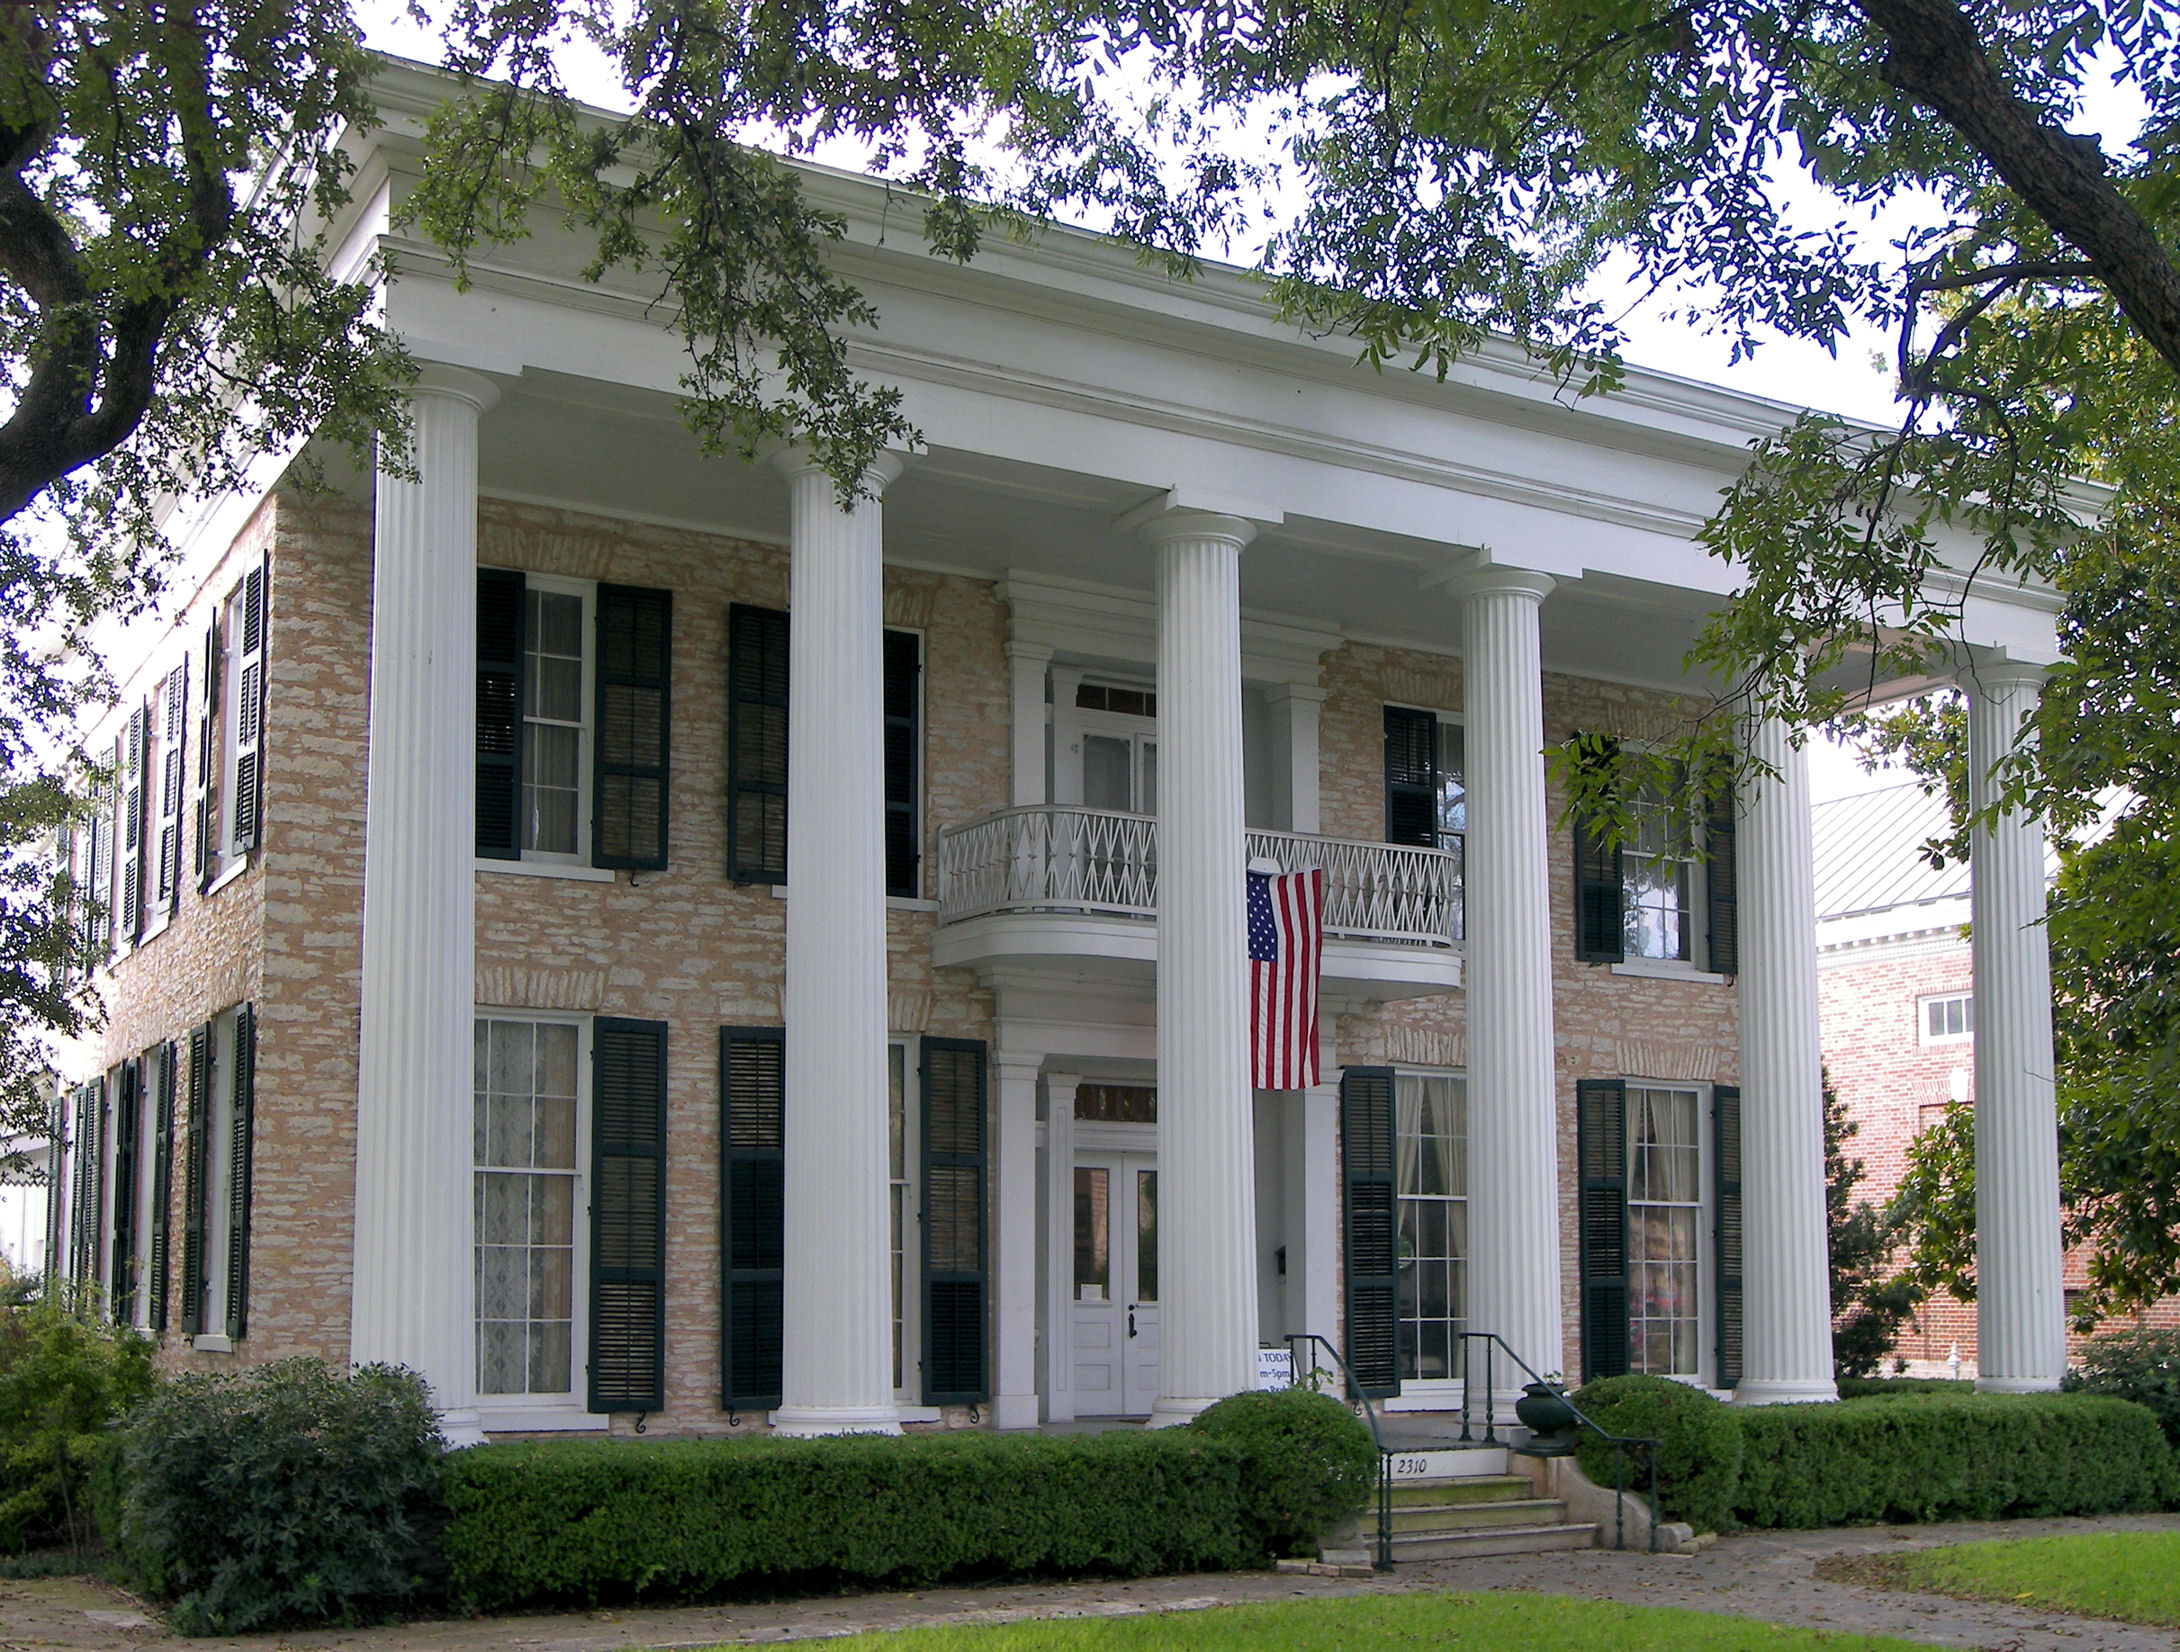 10 Beautiful Historic Texas Mansions Every Texan Should Visit